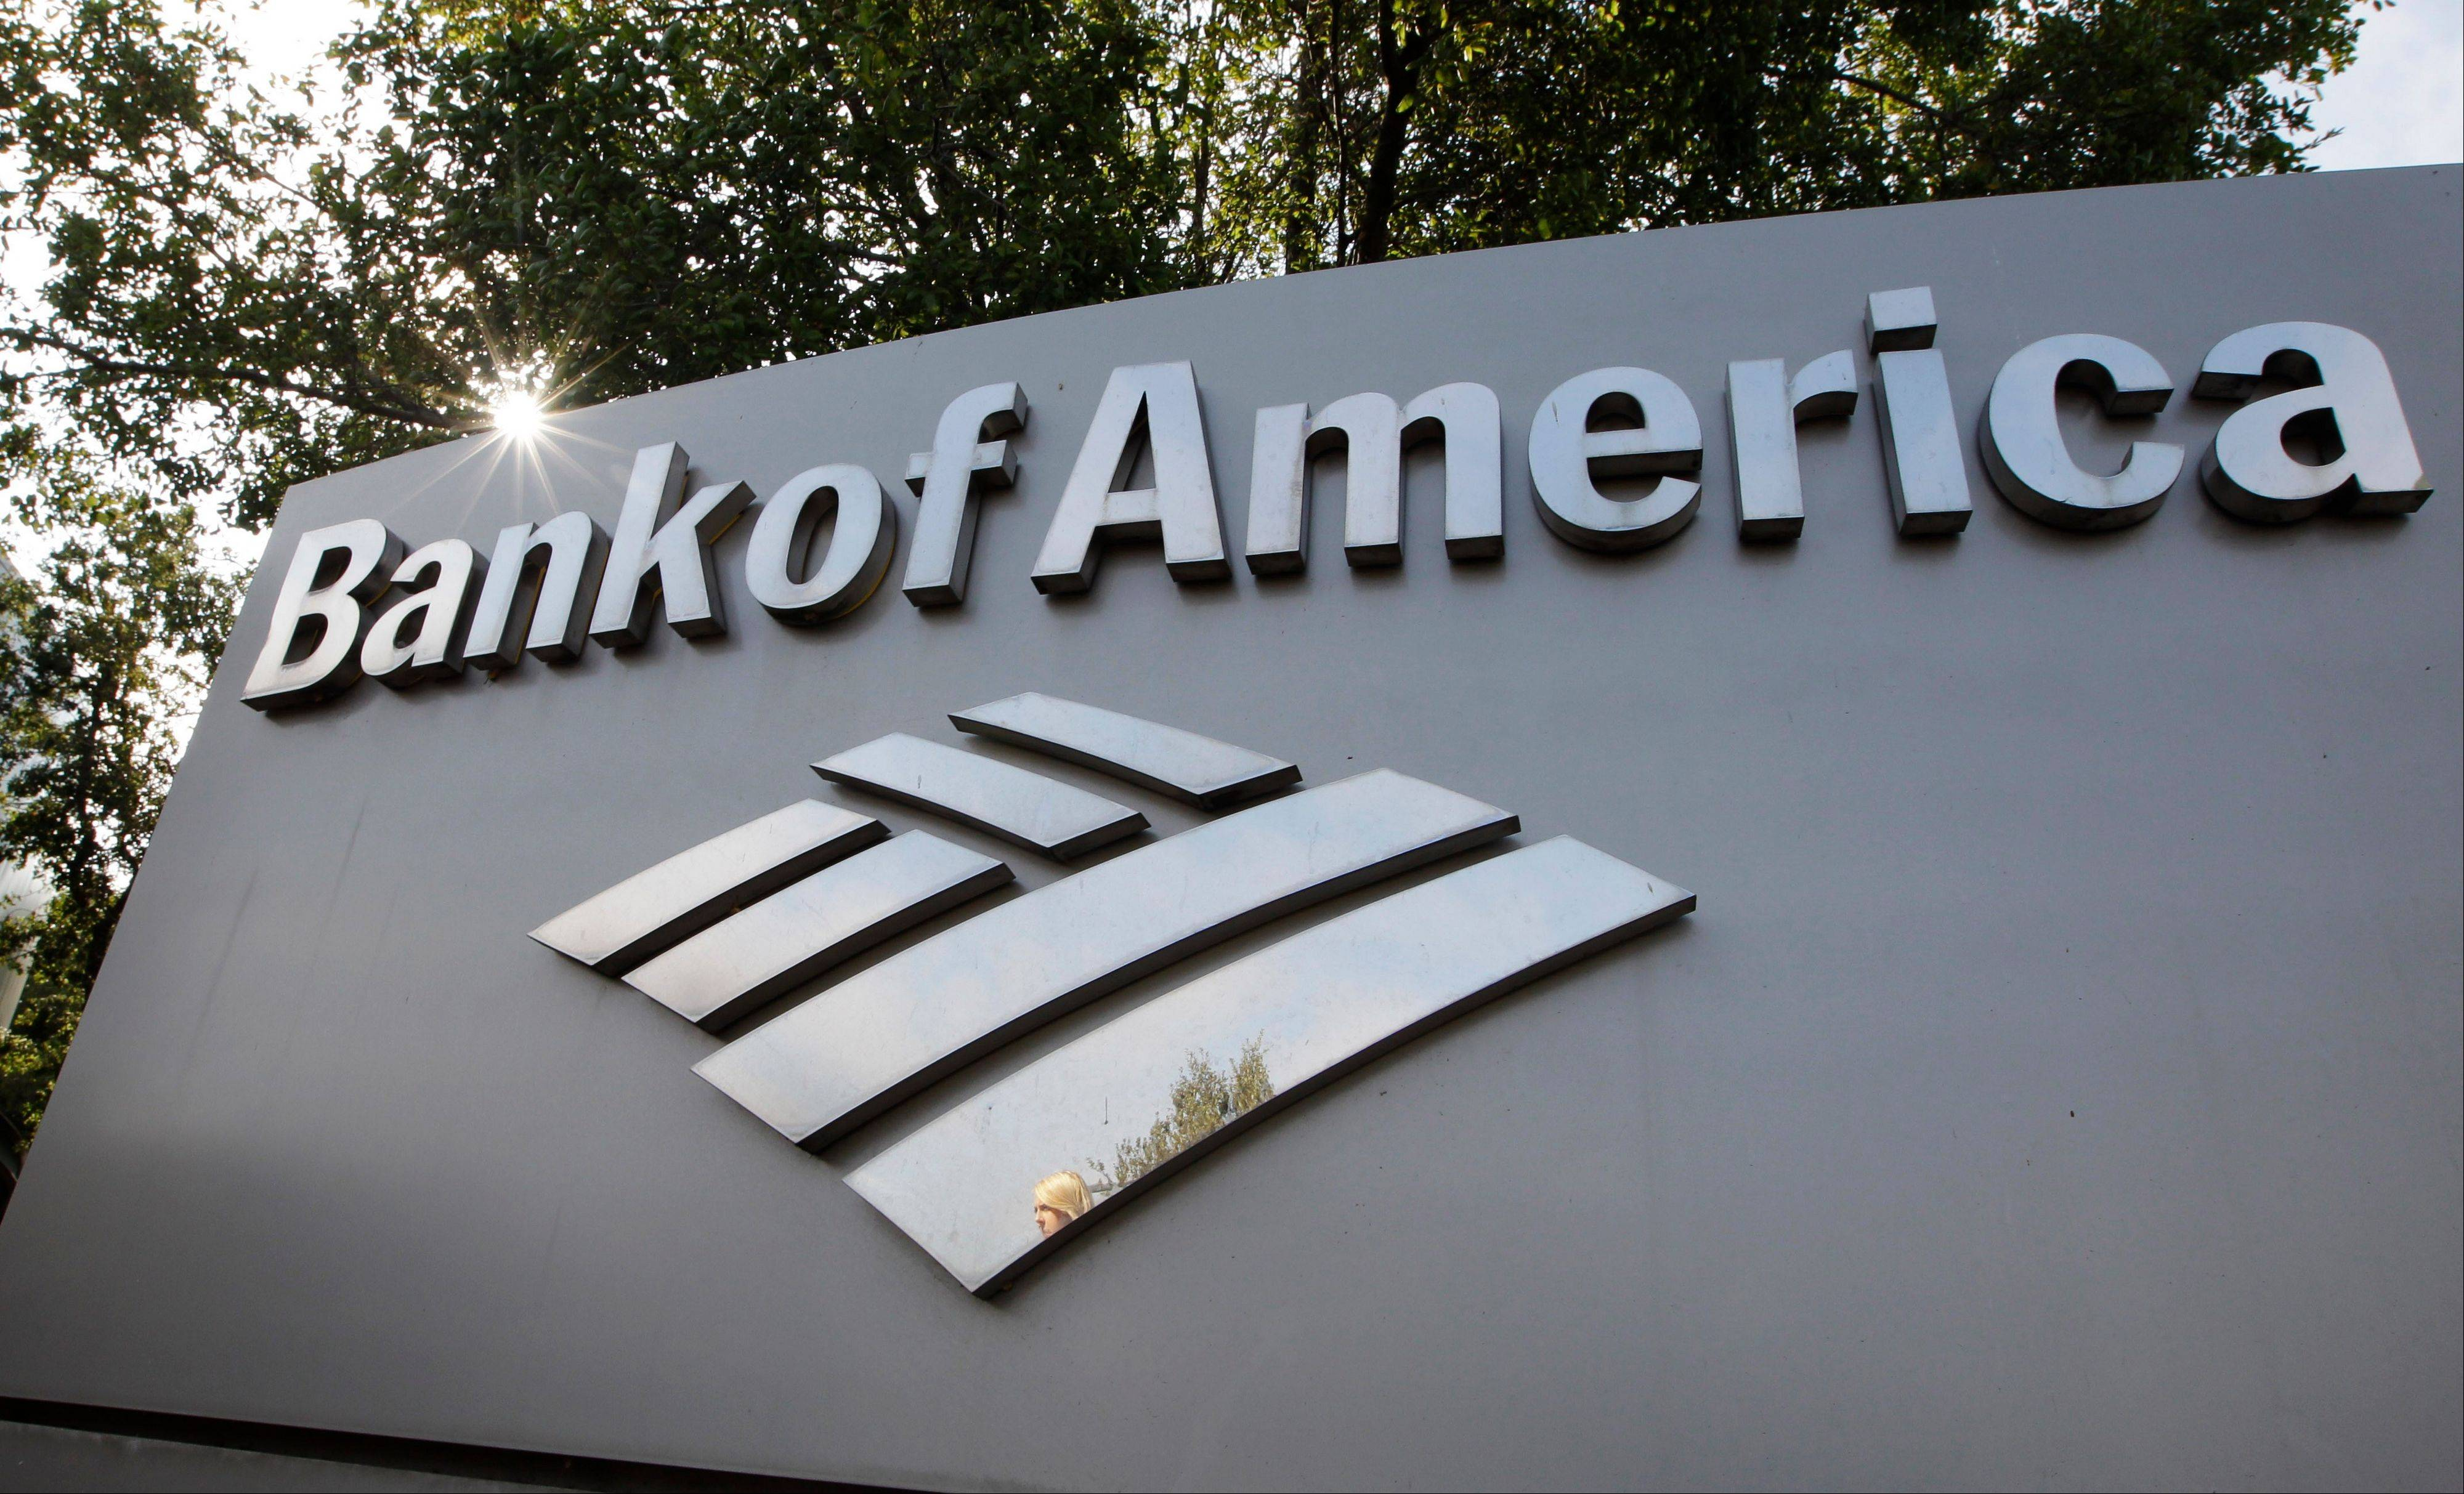 A Bank of America logo is displayed at a branch office in Palo Alto, Calif., Monday, Sept. 12, 2011. Bank of America will cut about 30,000 jobs over the next few years in a bid to save $5 billion per year. The cost-cutting drive is part of a broader effort to reshape and shrink the nation's largest bank as it copes with fallout from the housing bust.